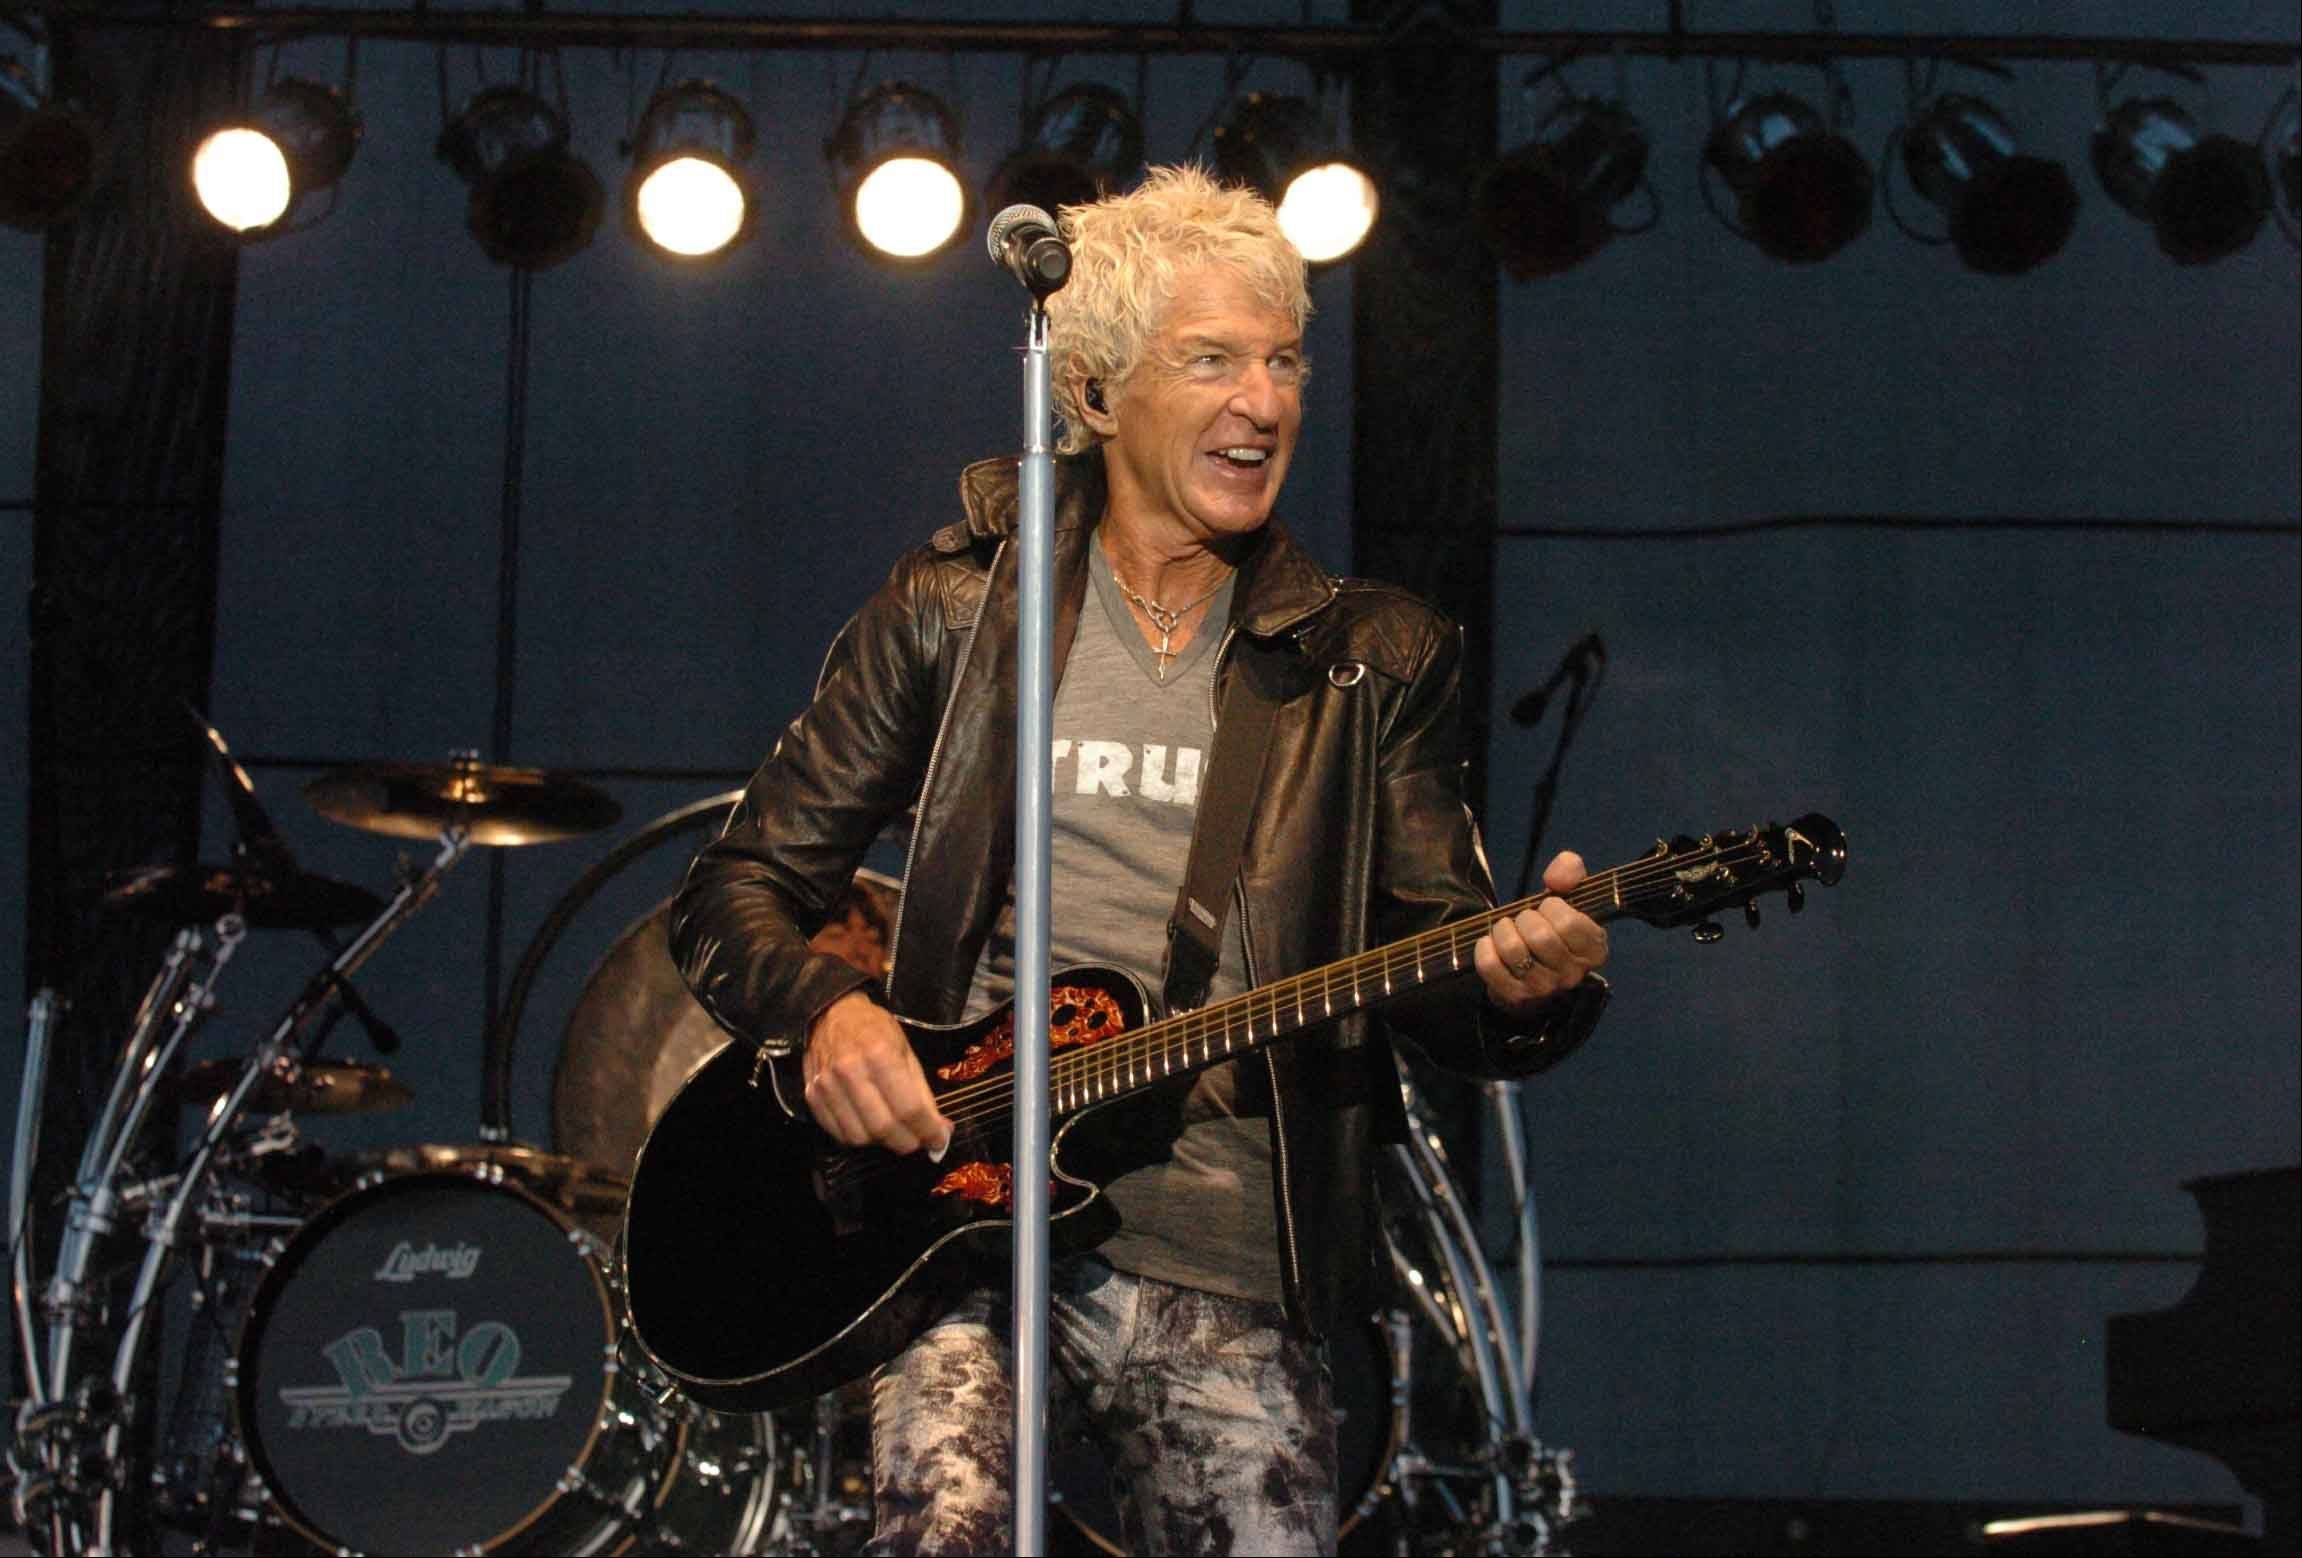 REO Speedwagon returns to the area for a concert on Saturday, Jan. 18, at the Rosemont Theatre.